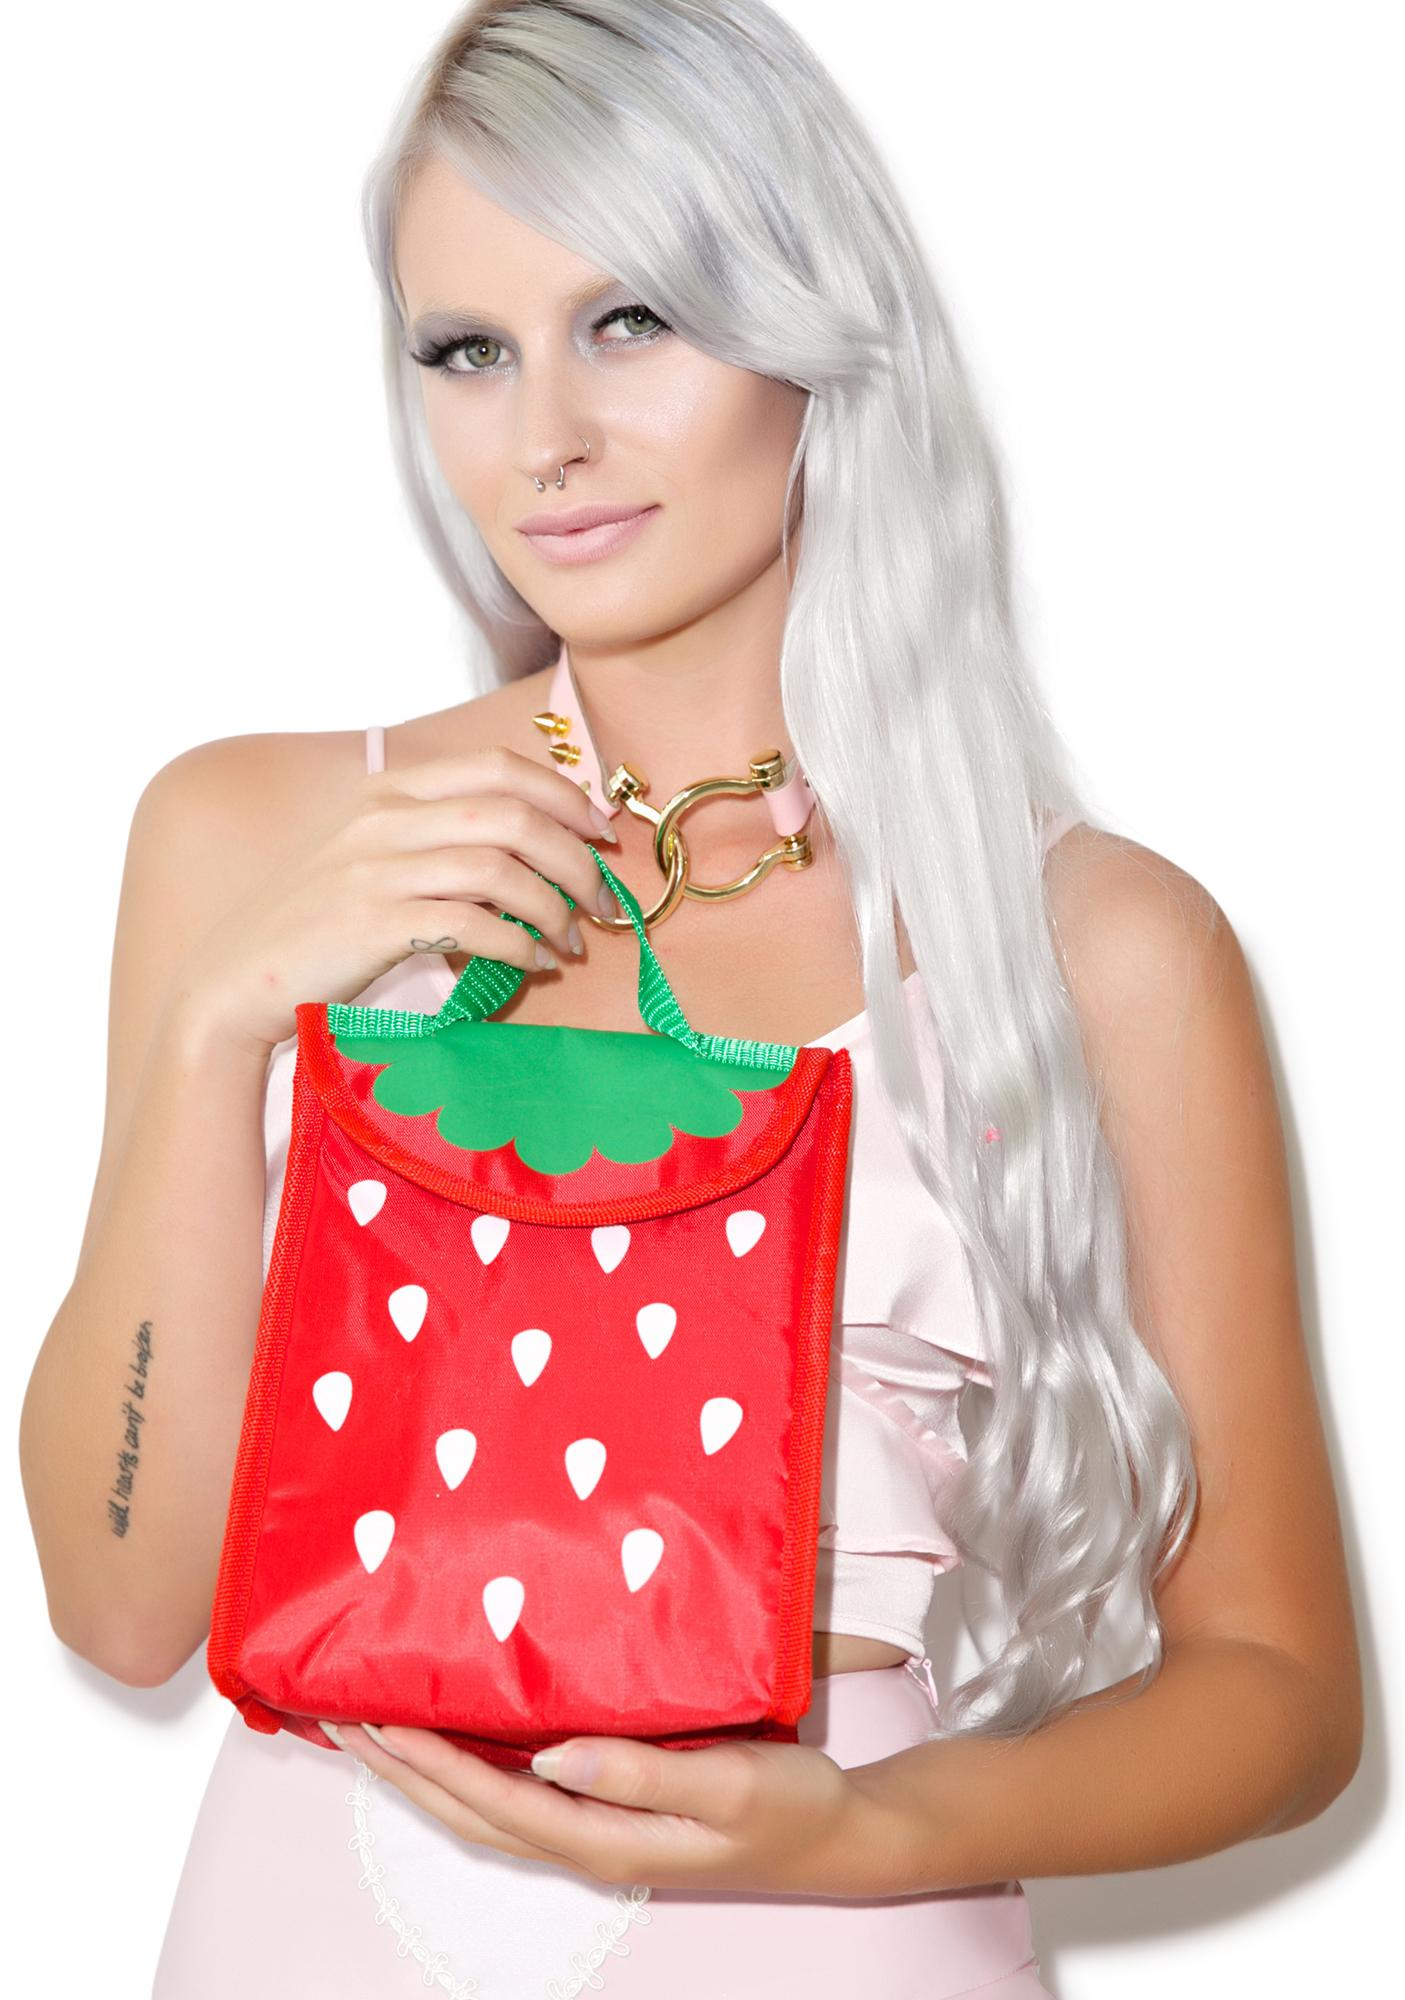 Berry-Licious Lunch Bag